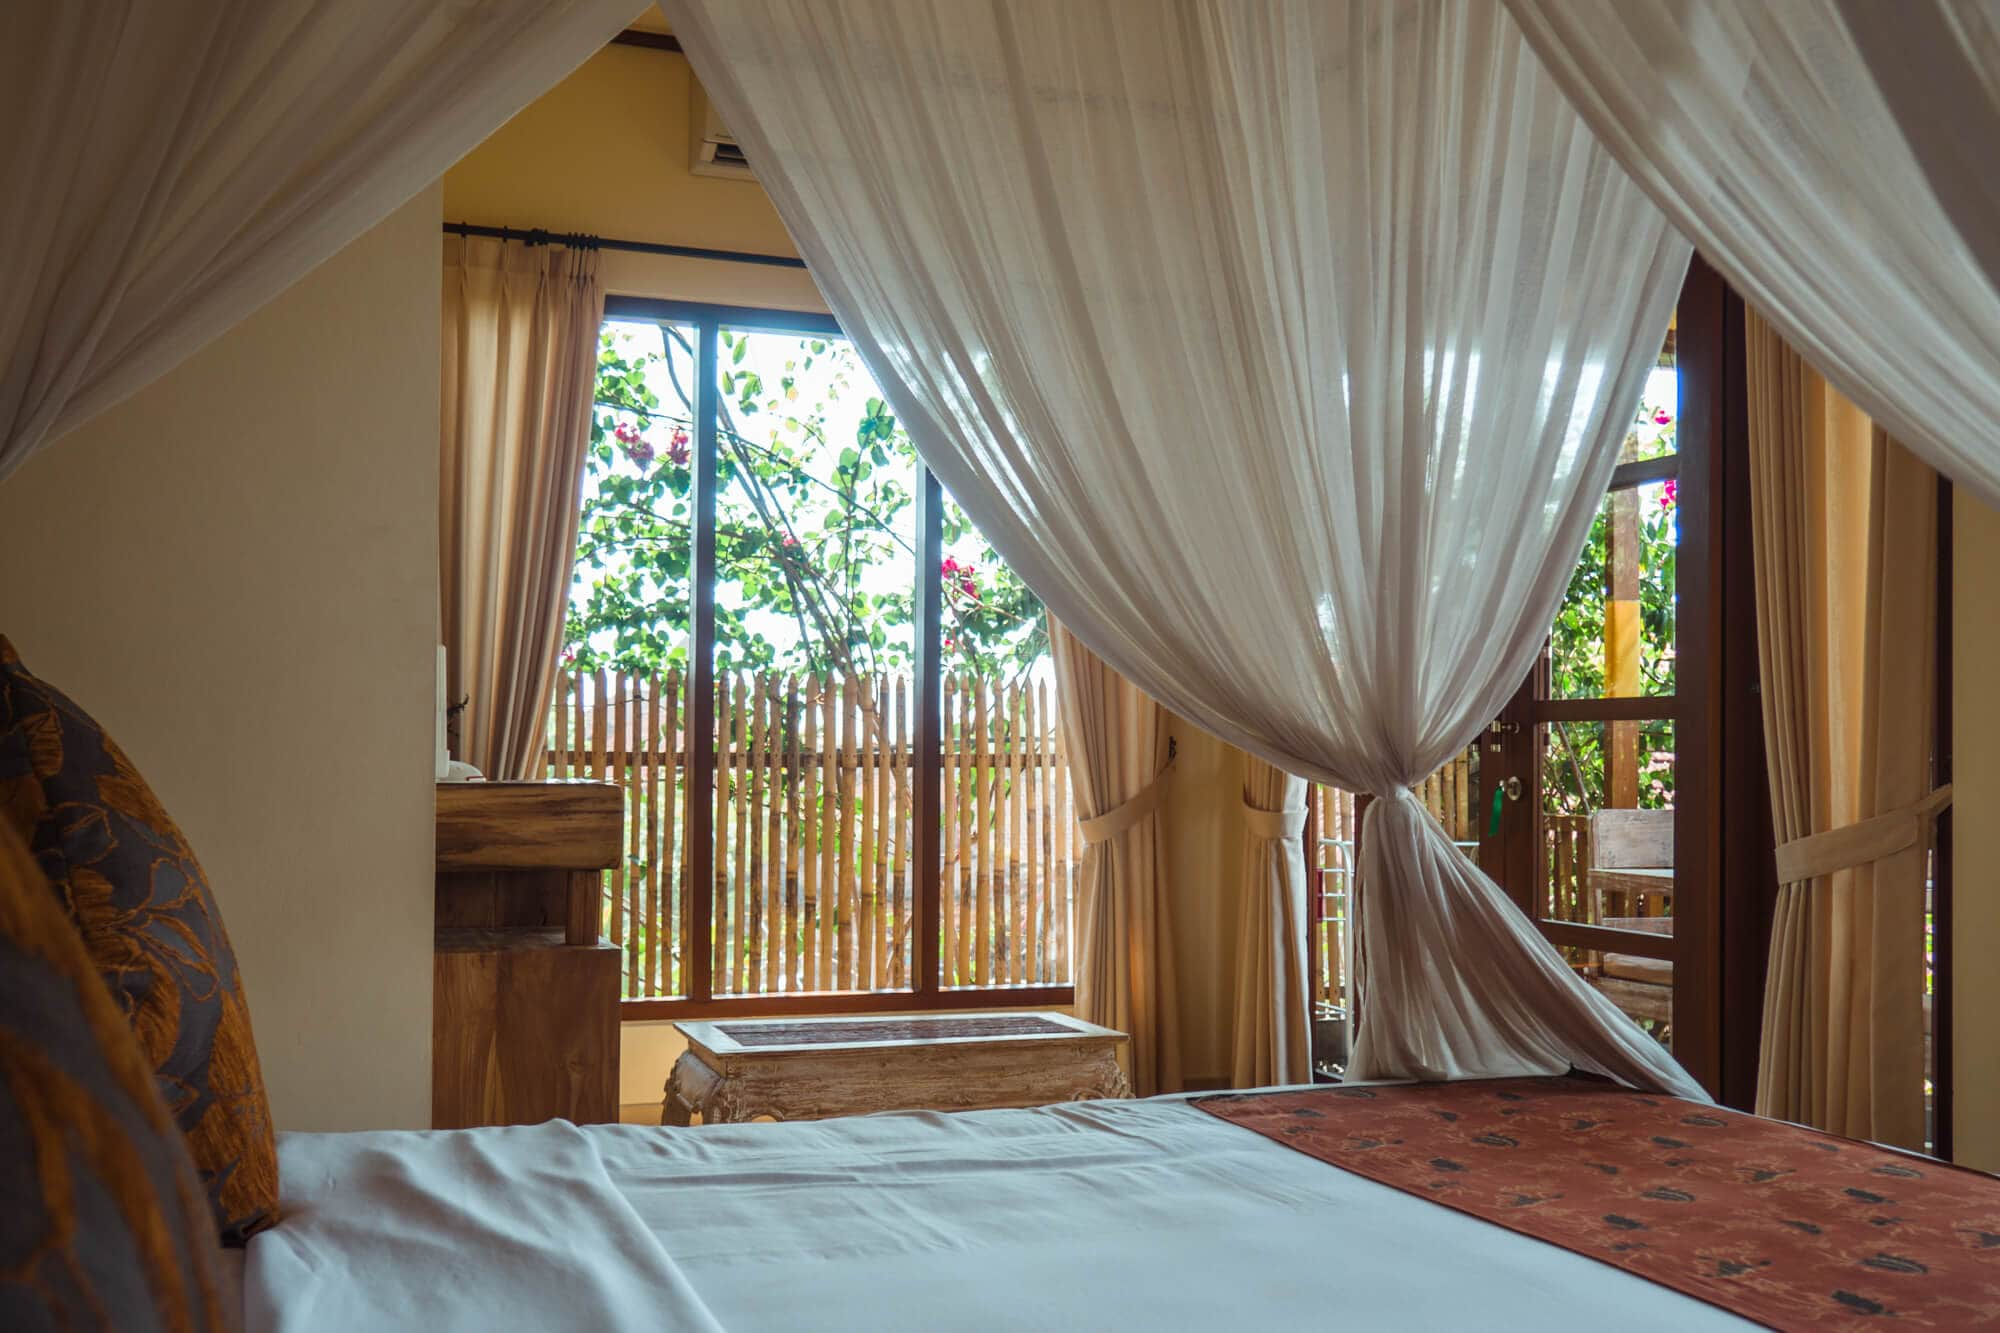 Bali's best budget hotels, villas & Airbnbs - Jawi House & Painter is one of the best value Airbnbs in Ubud